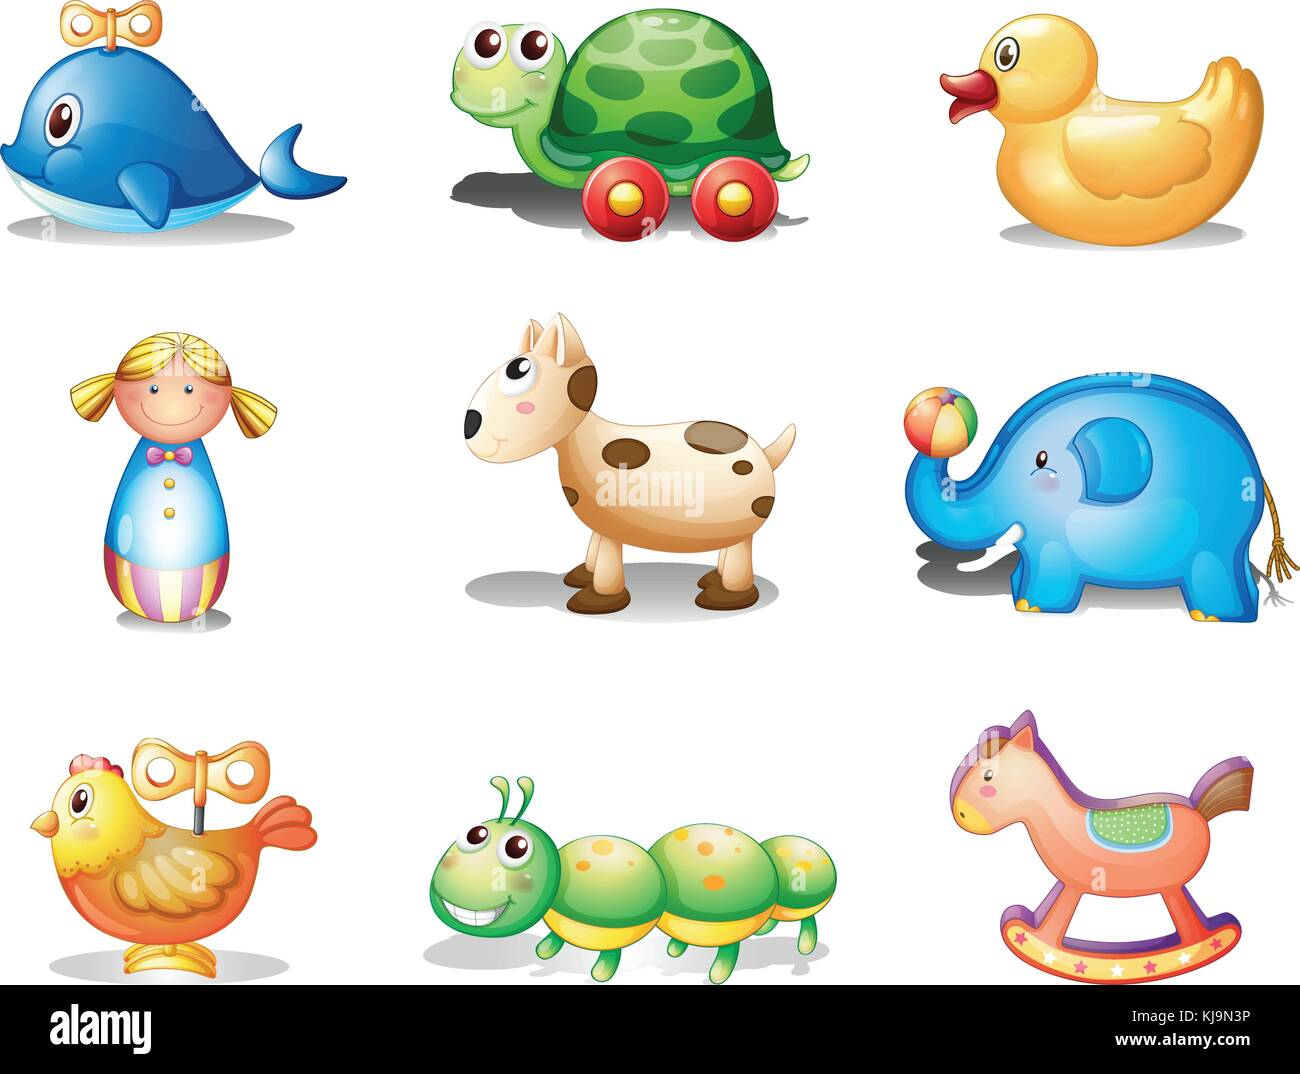 Illustration of the different toys for kids on a white background Stock Vector